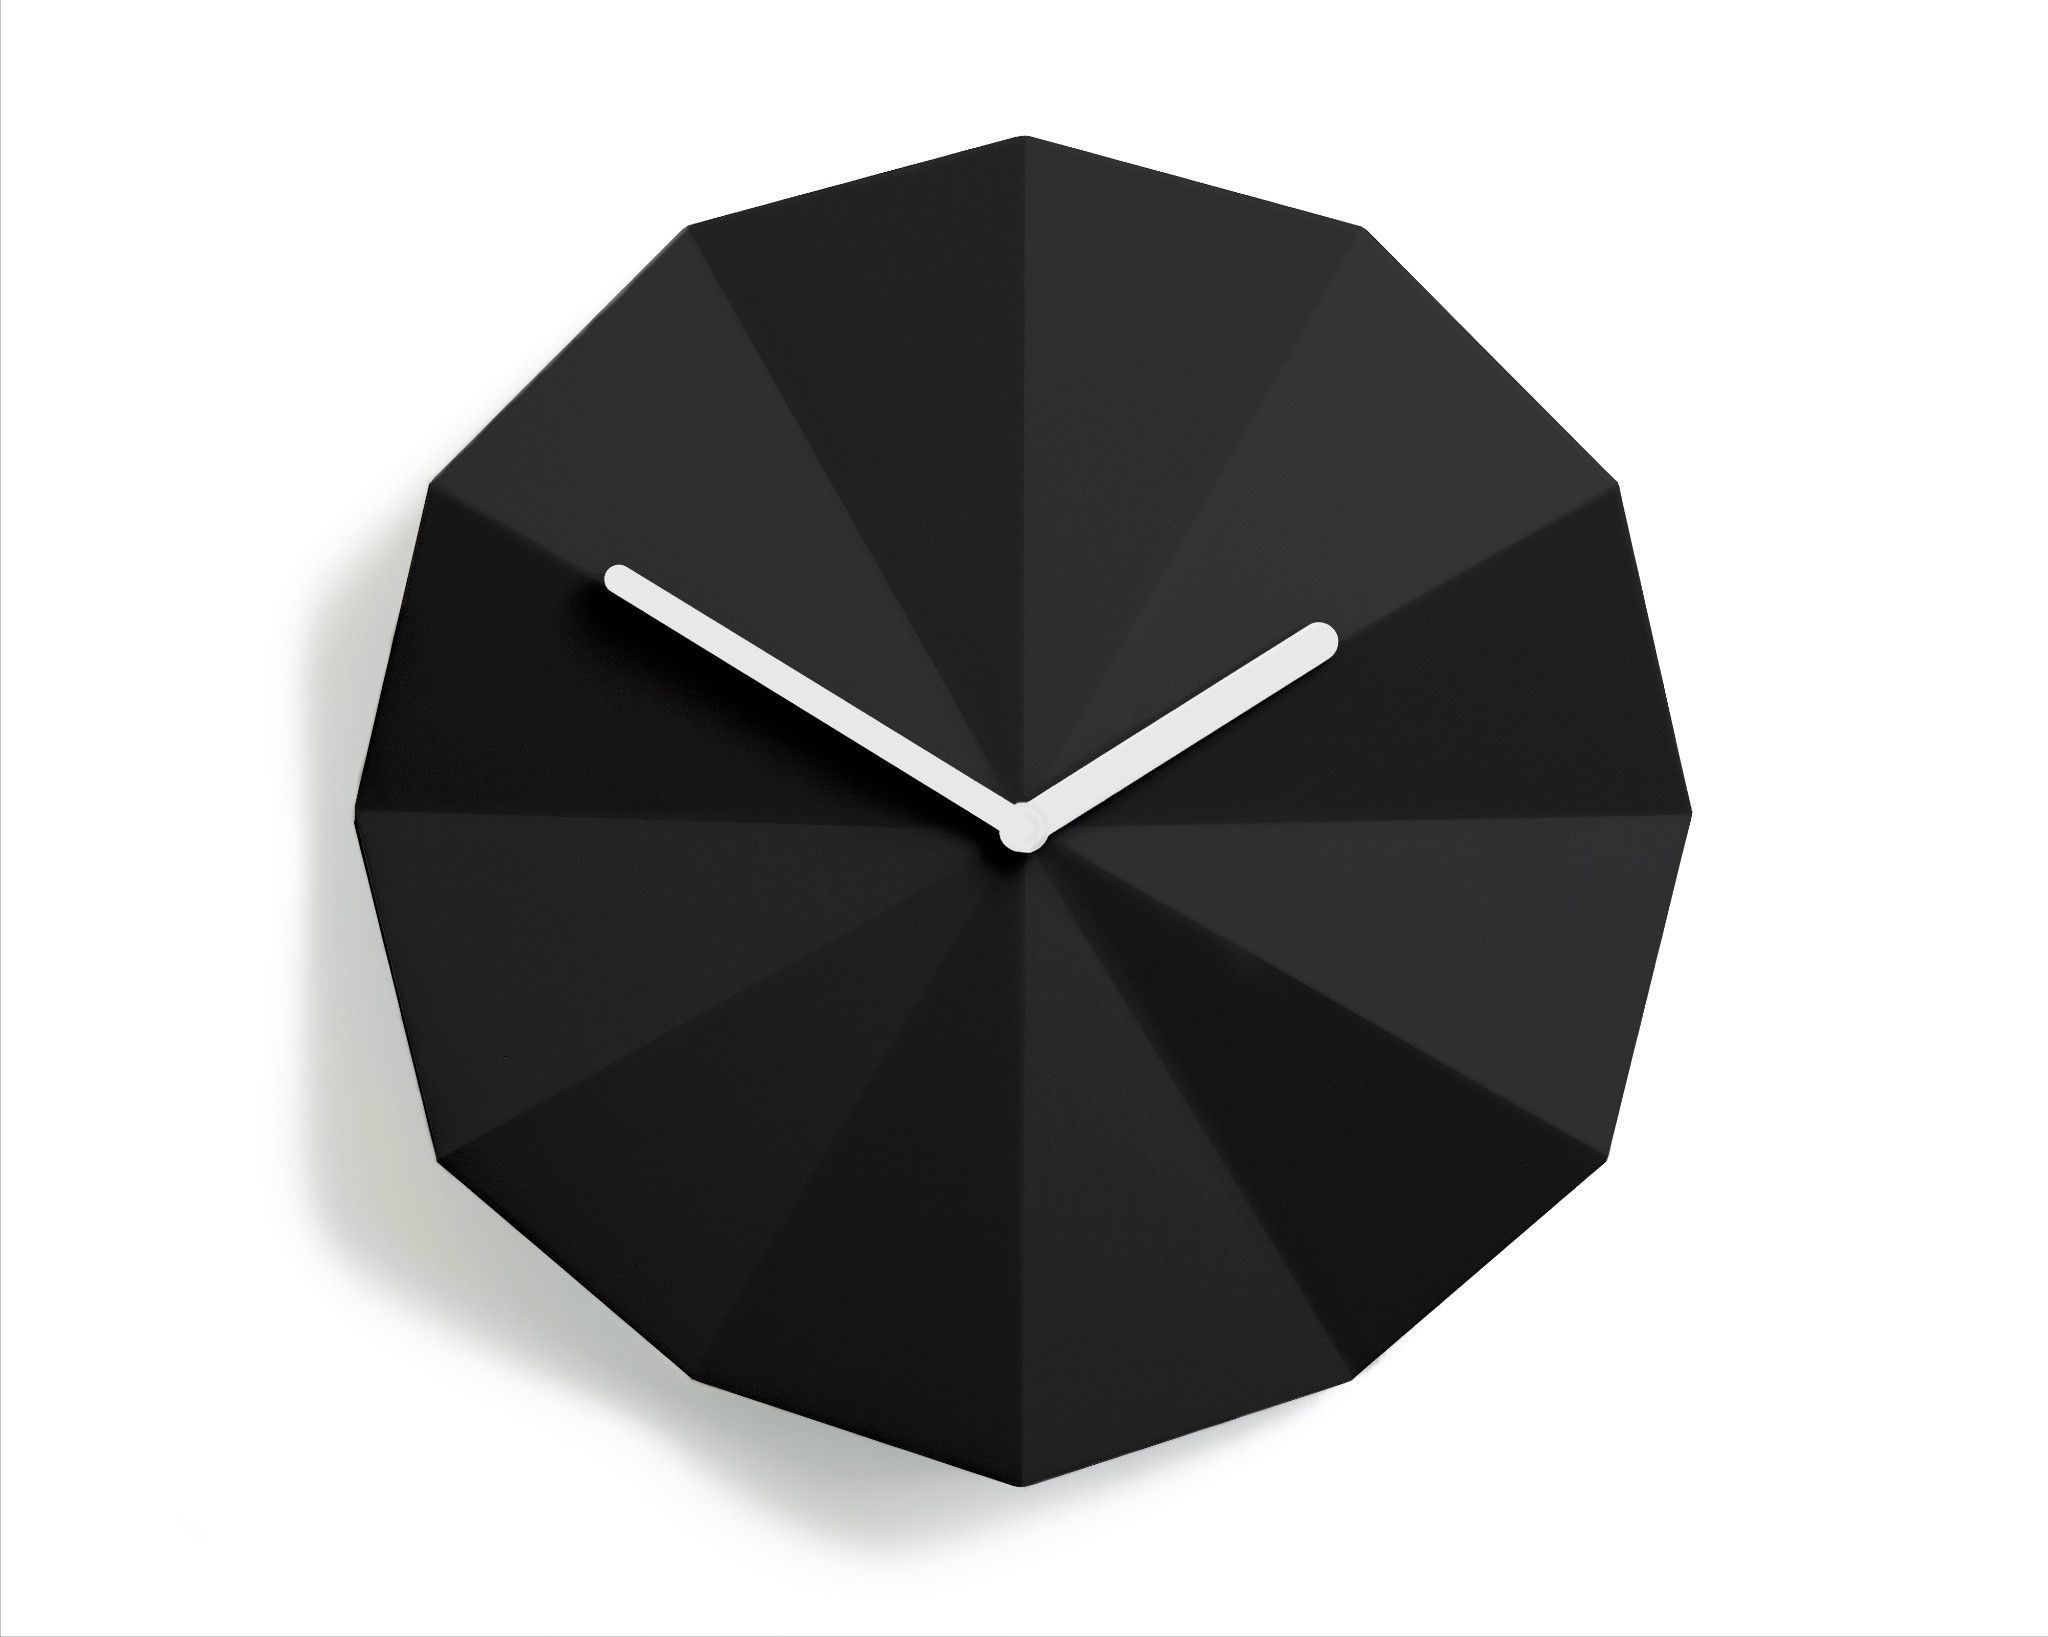 Delta Wall Clock By Lawa Design 11 Inch Black Embellecedores